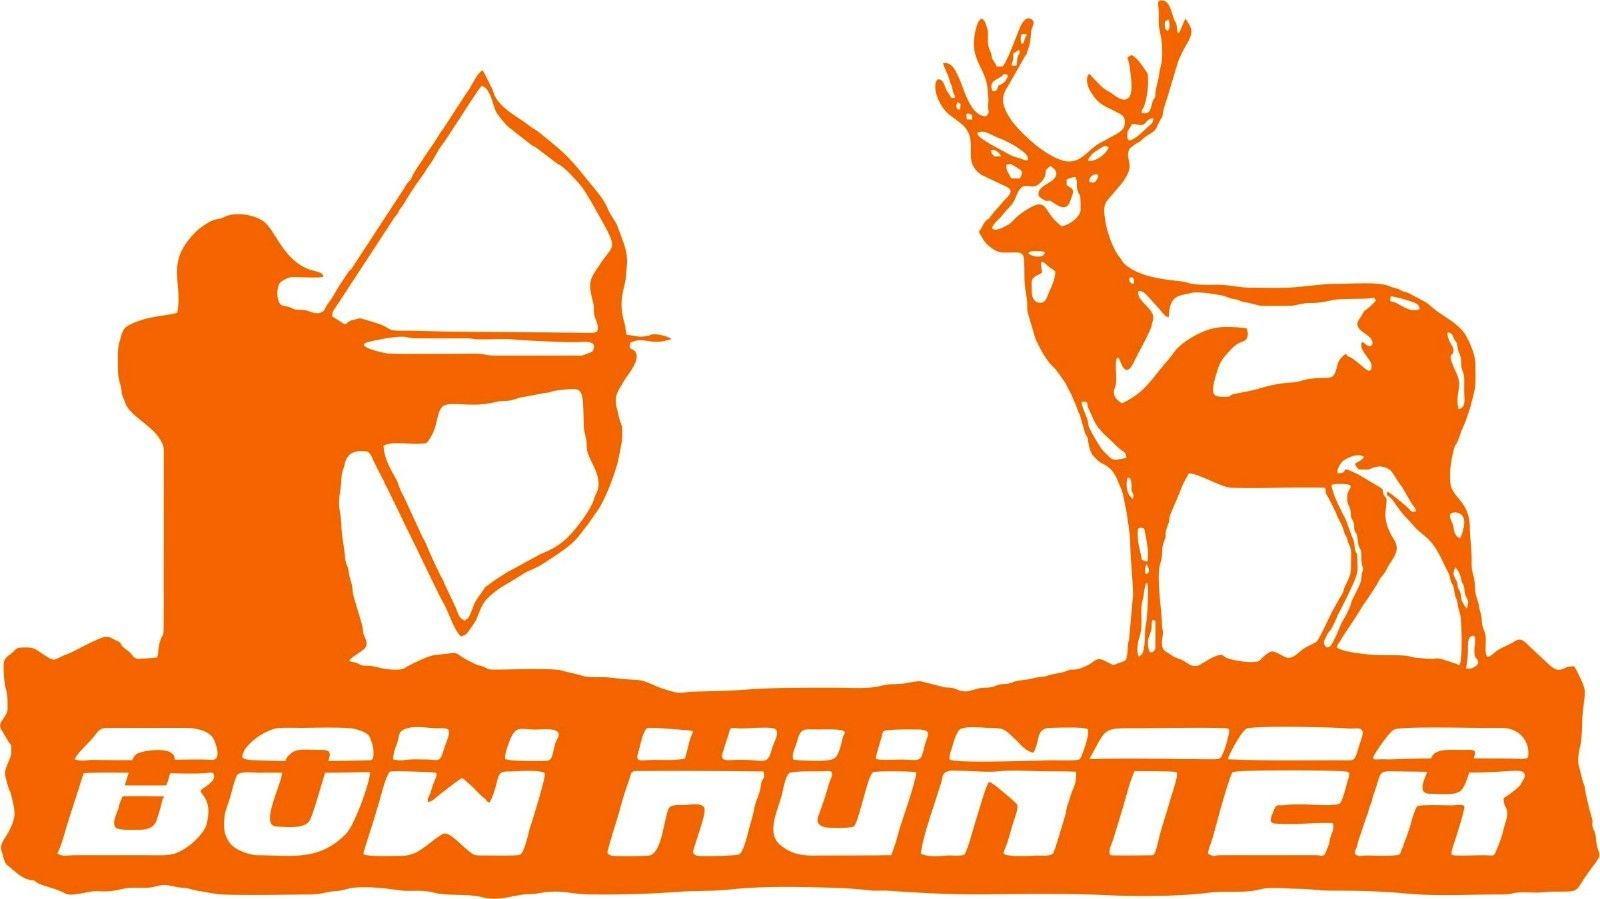 "Bow Hunter Deer Archery Hunting Car Truck Window Laptop Vinyl Decal Sticker - 12"" Long Edge"